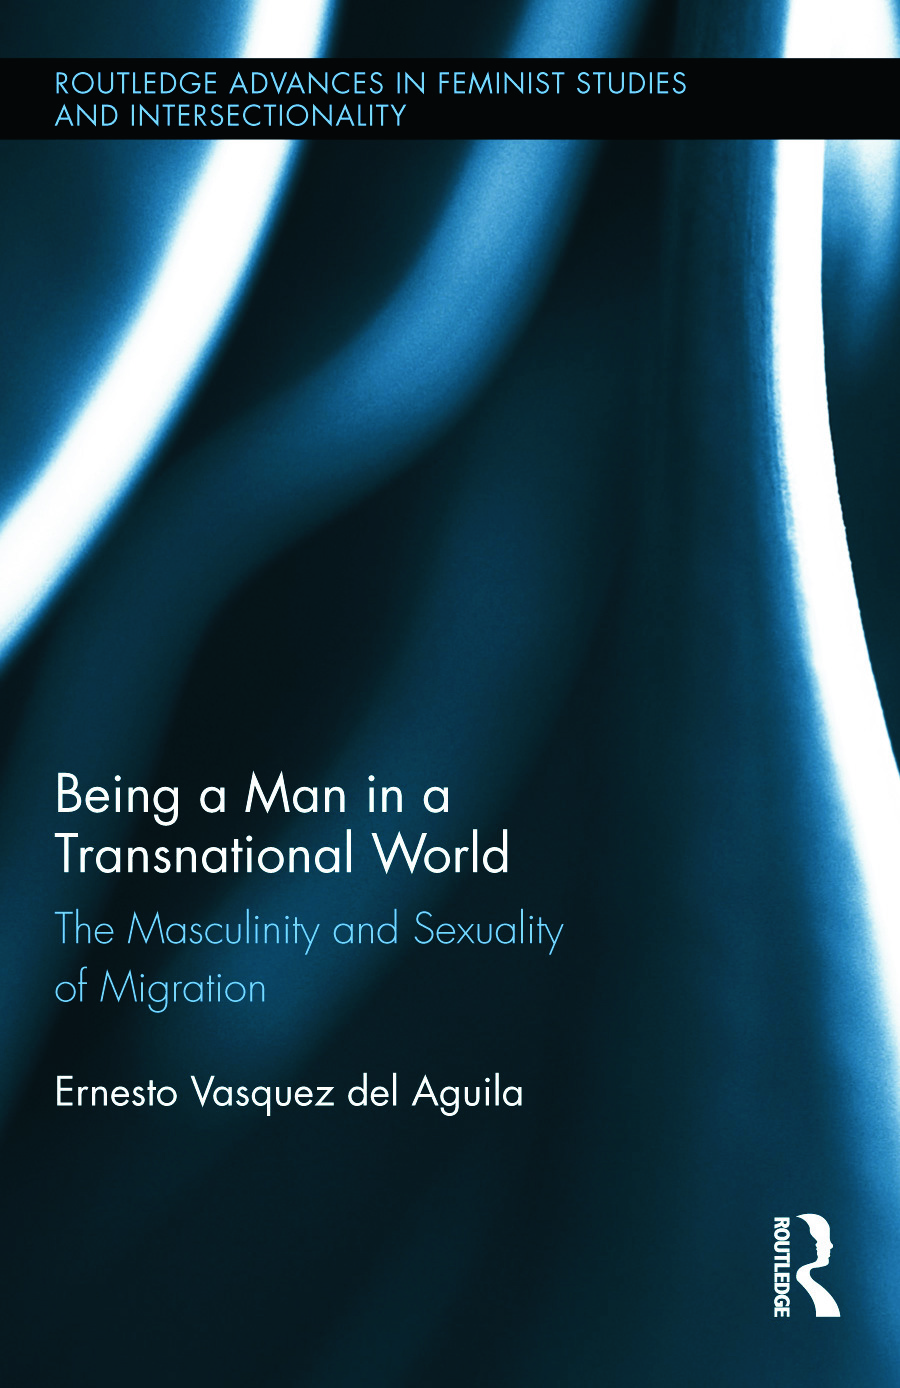 Being a Man in a Transnational World: The Masculinity and Sexuality of Migration book cover